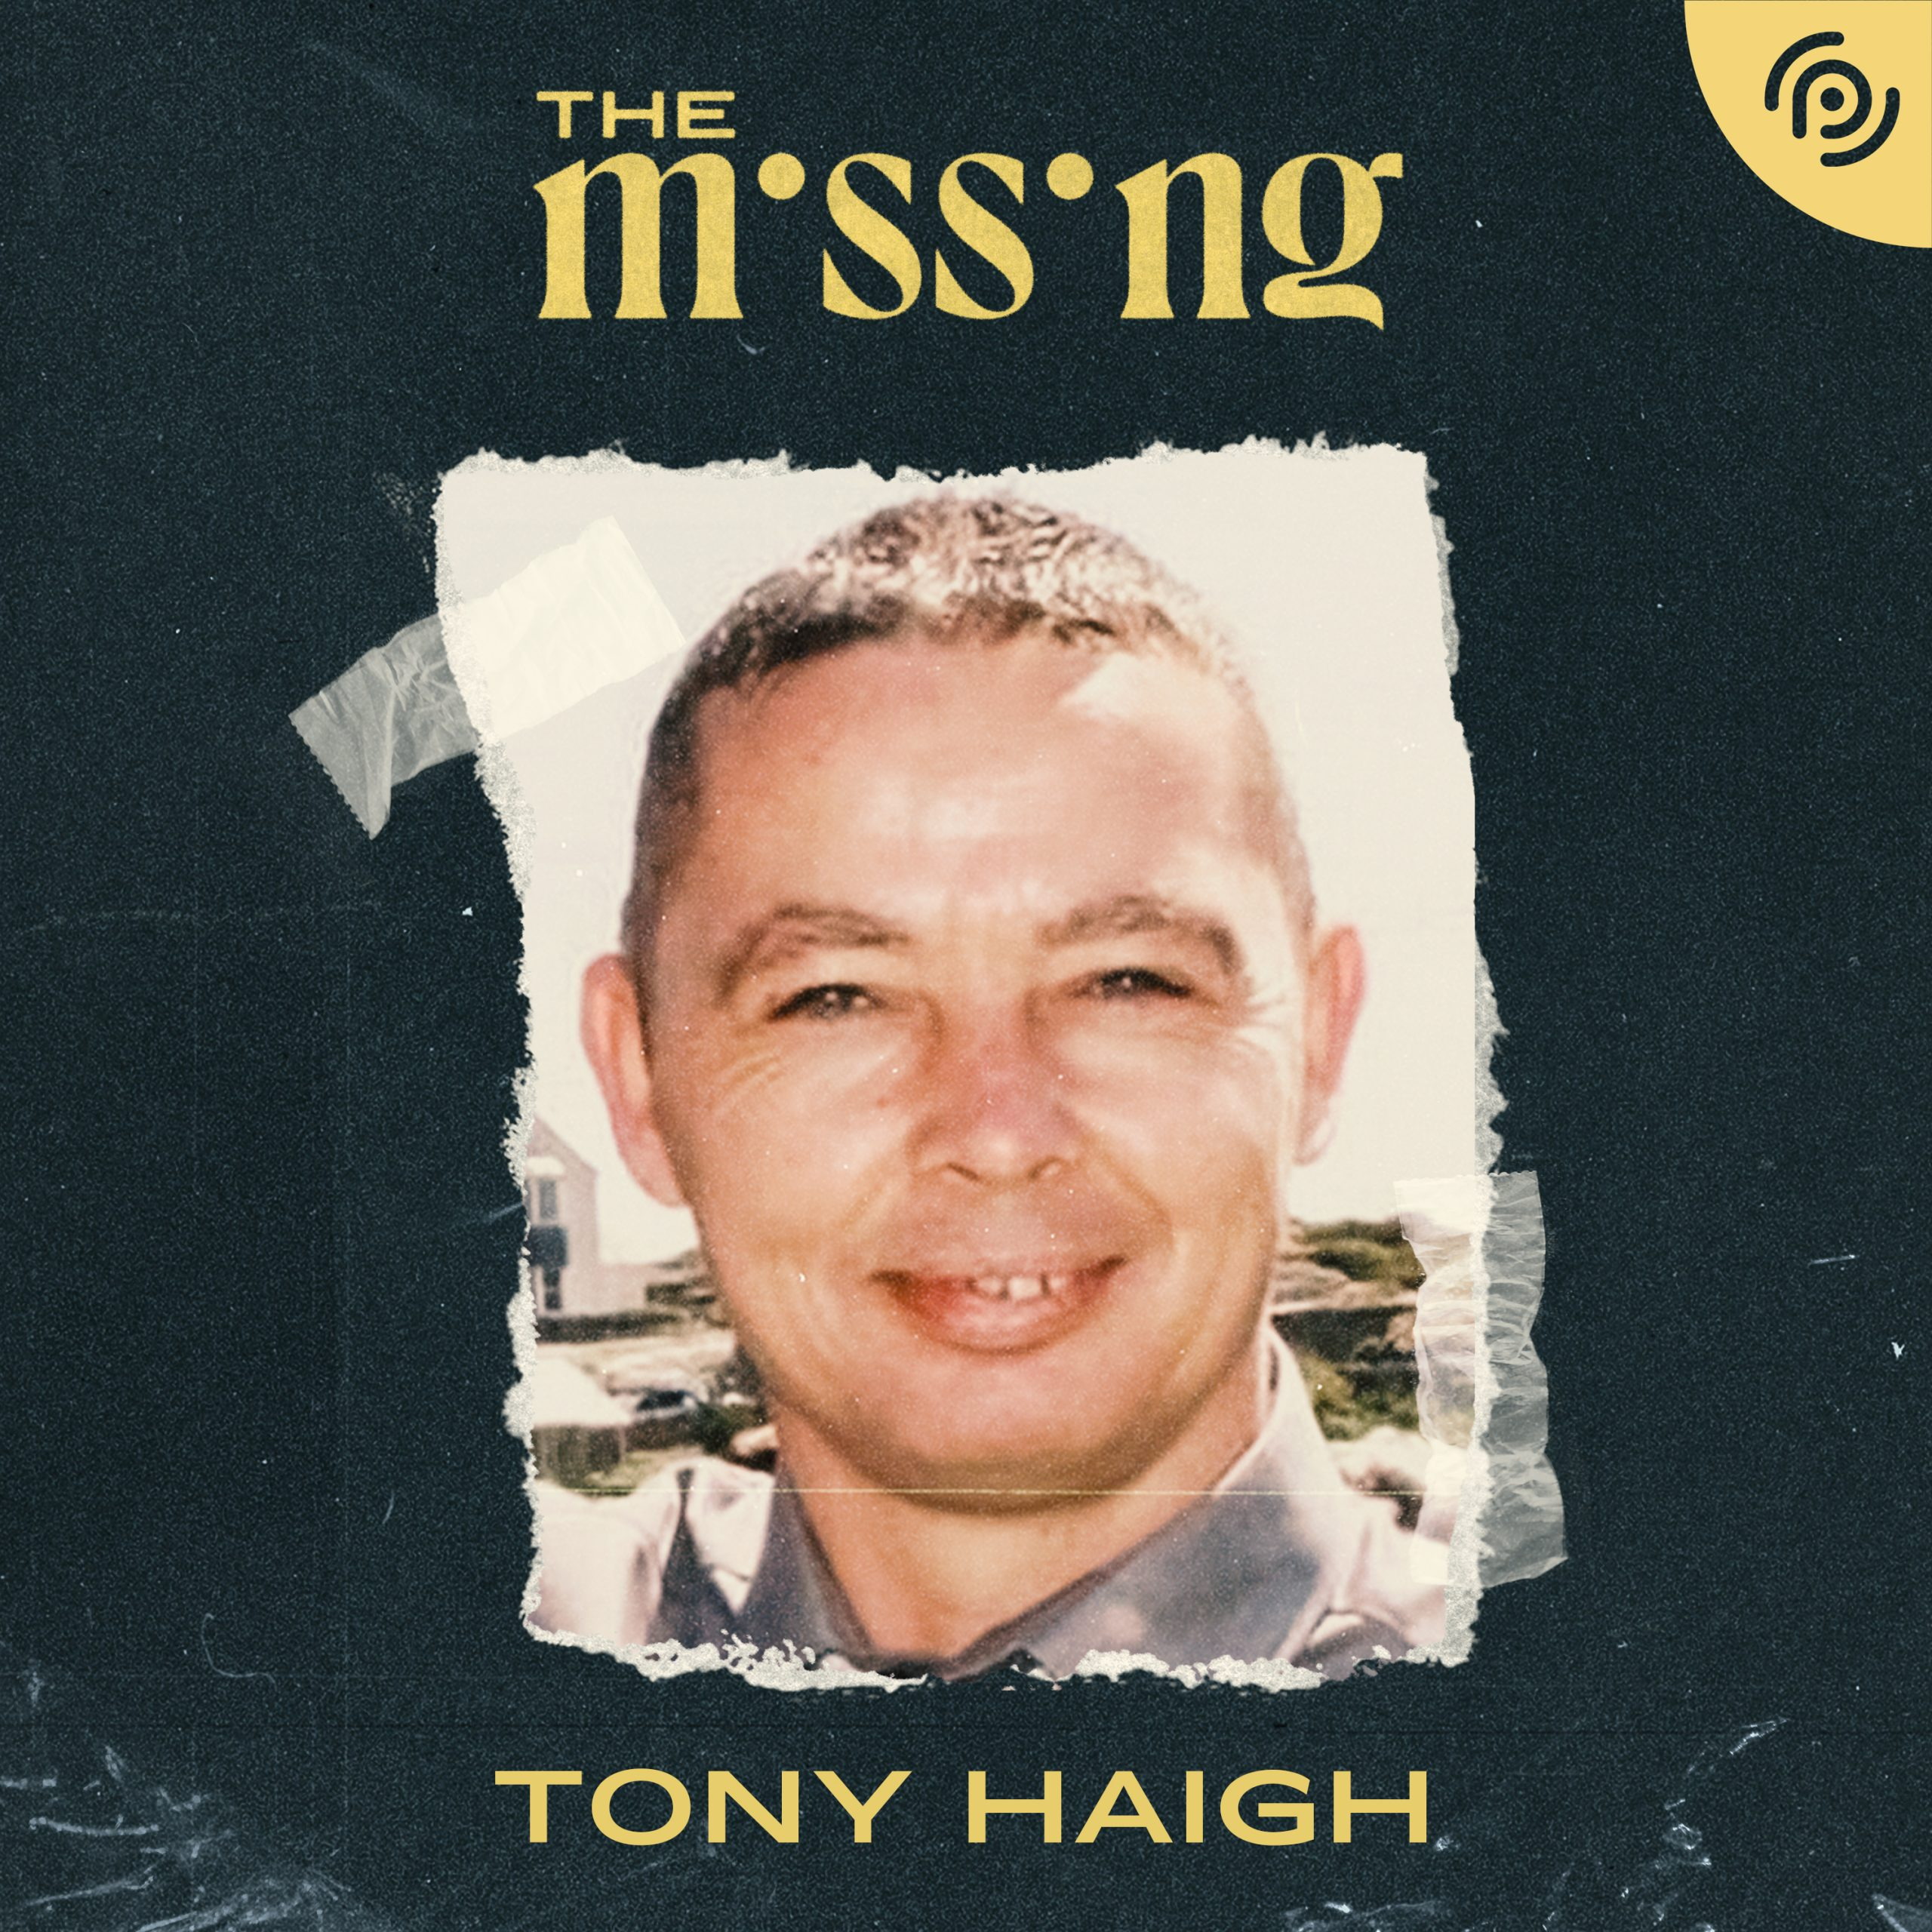 The Missing PodCast Tony Haigh